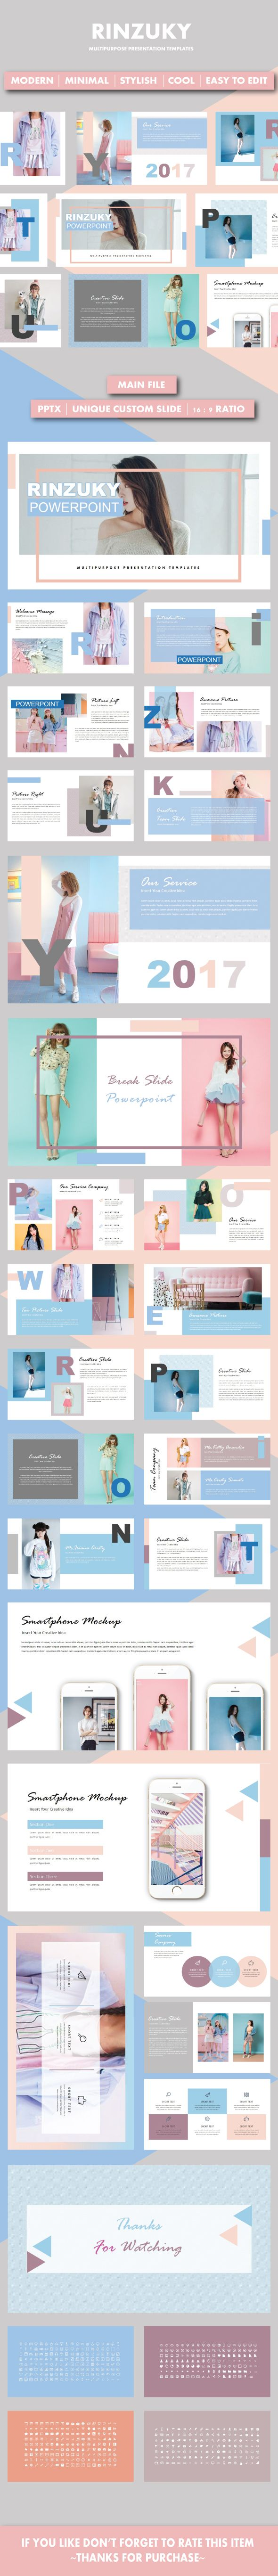 Rinzuky Creative PowerPoint Templates